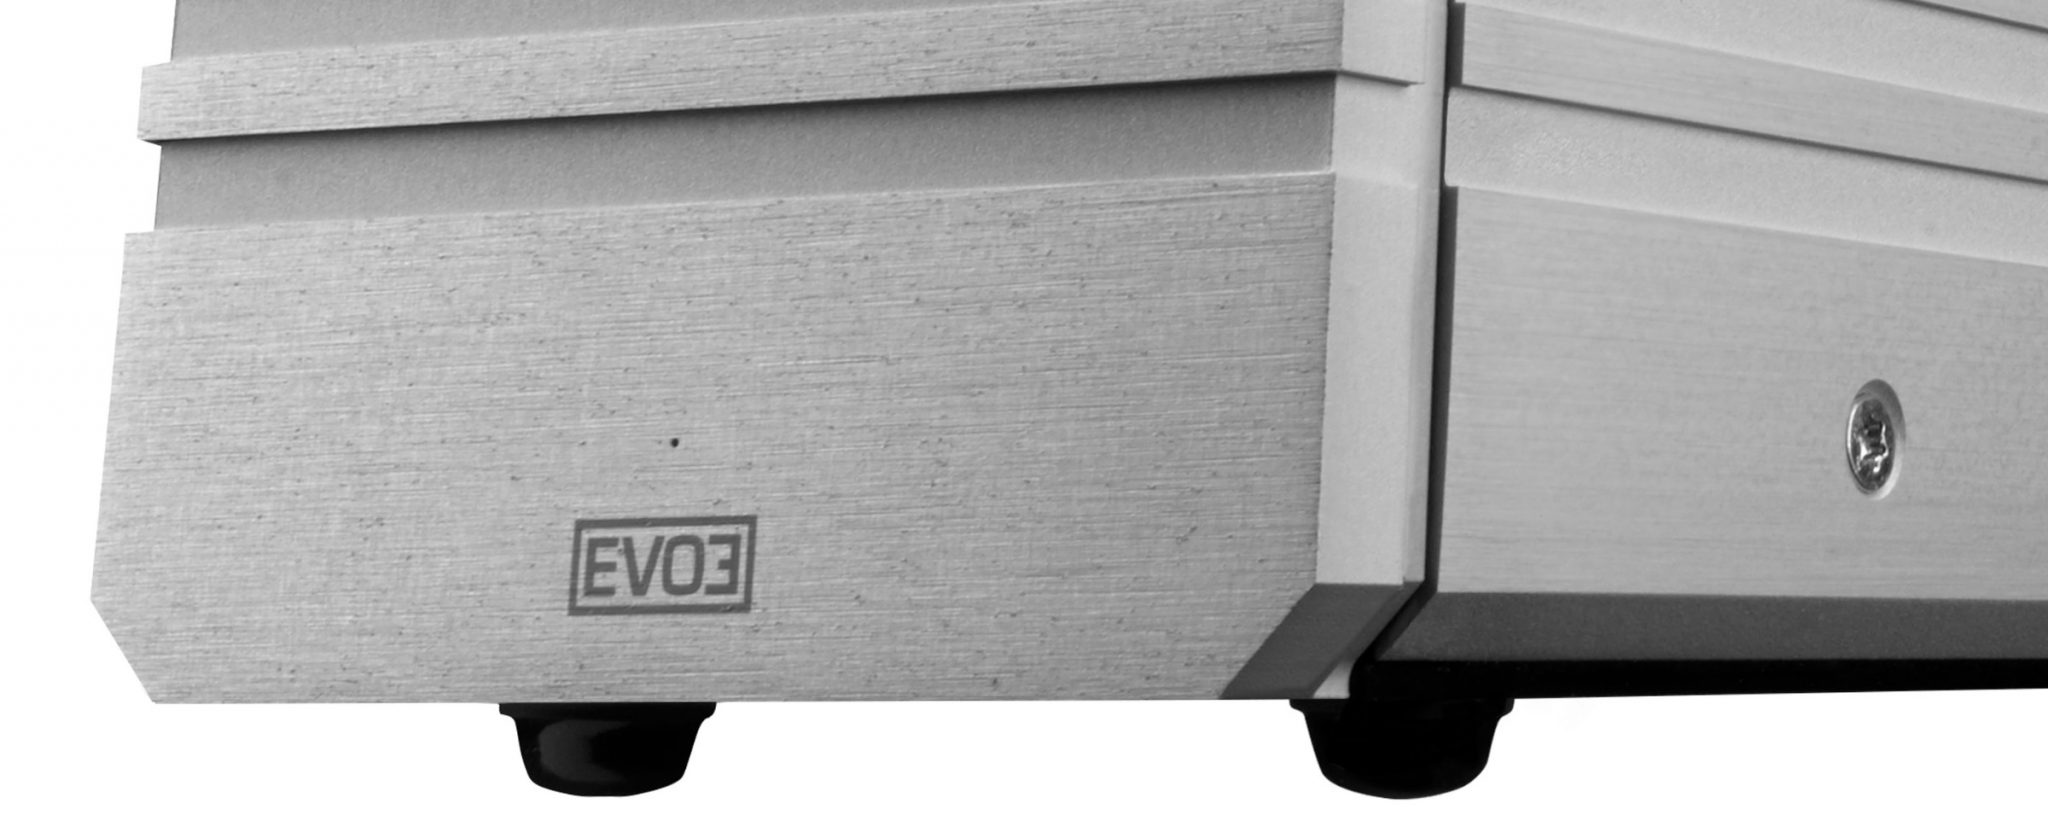 Isotek EVO3 Nova One: Via The Mosaic Series